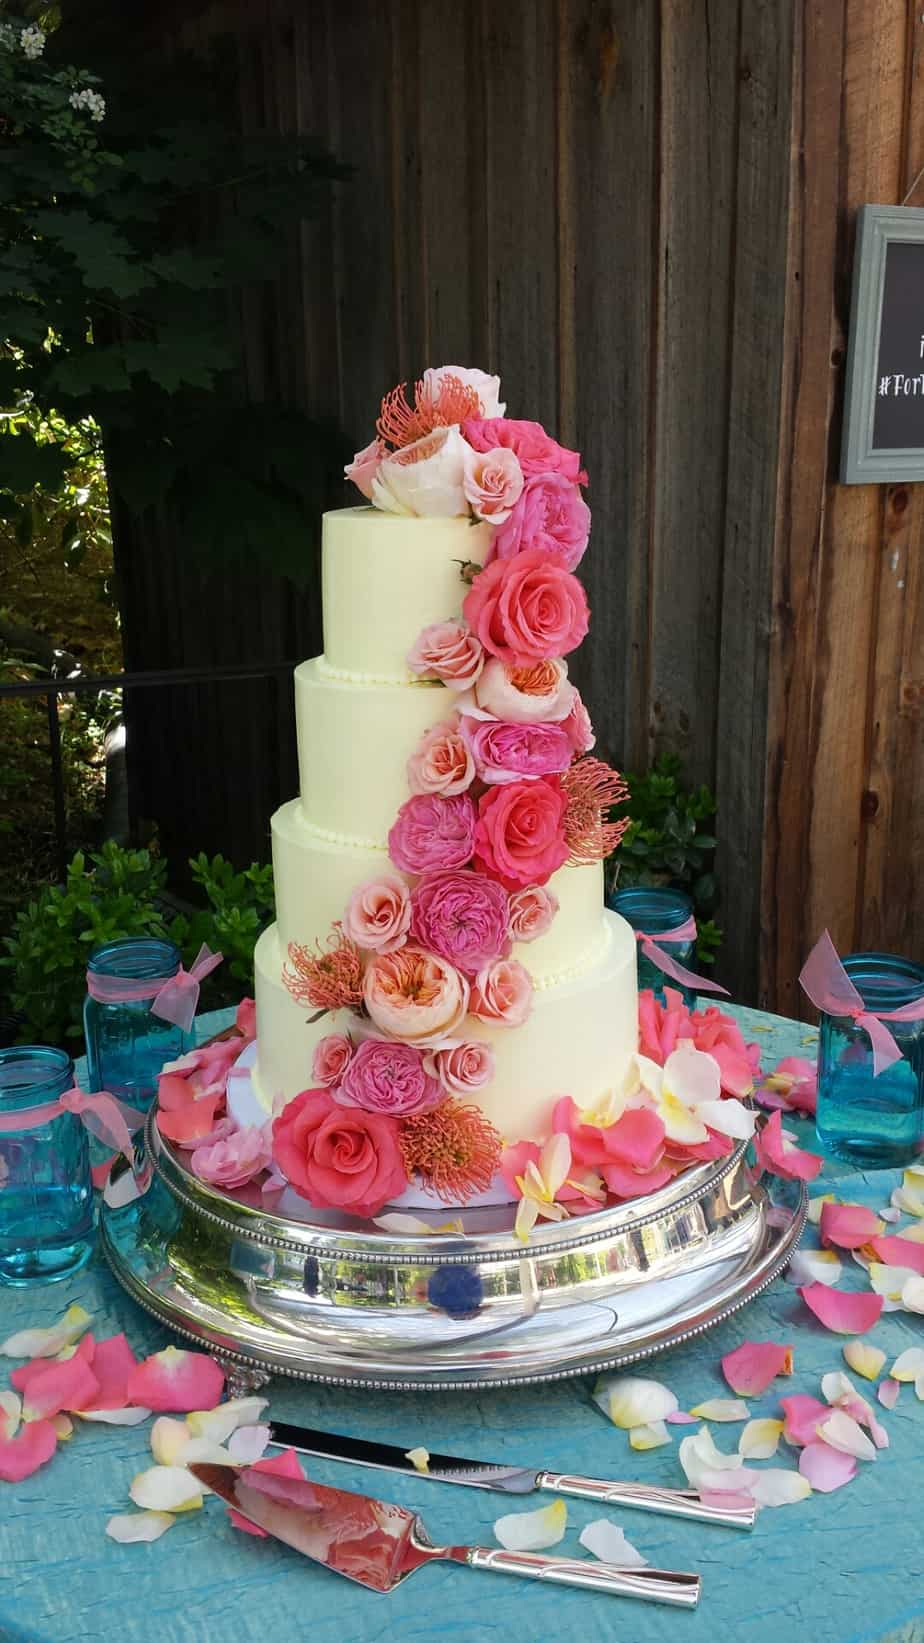 Wedding Cakes in Frederick County, Maryland